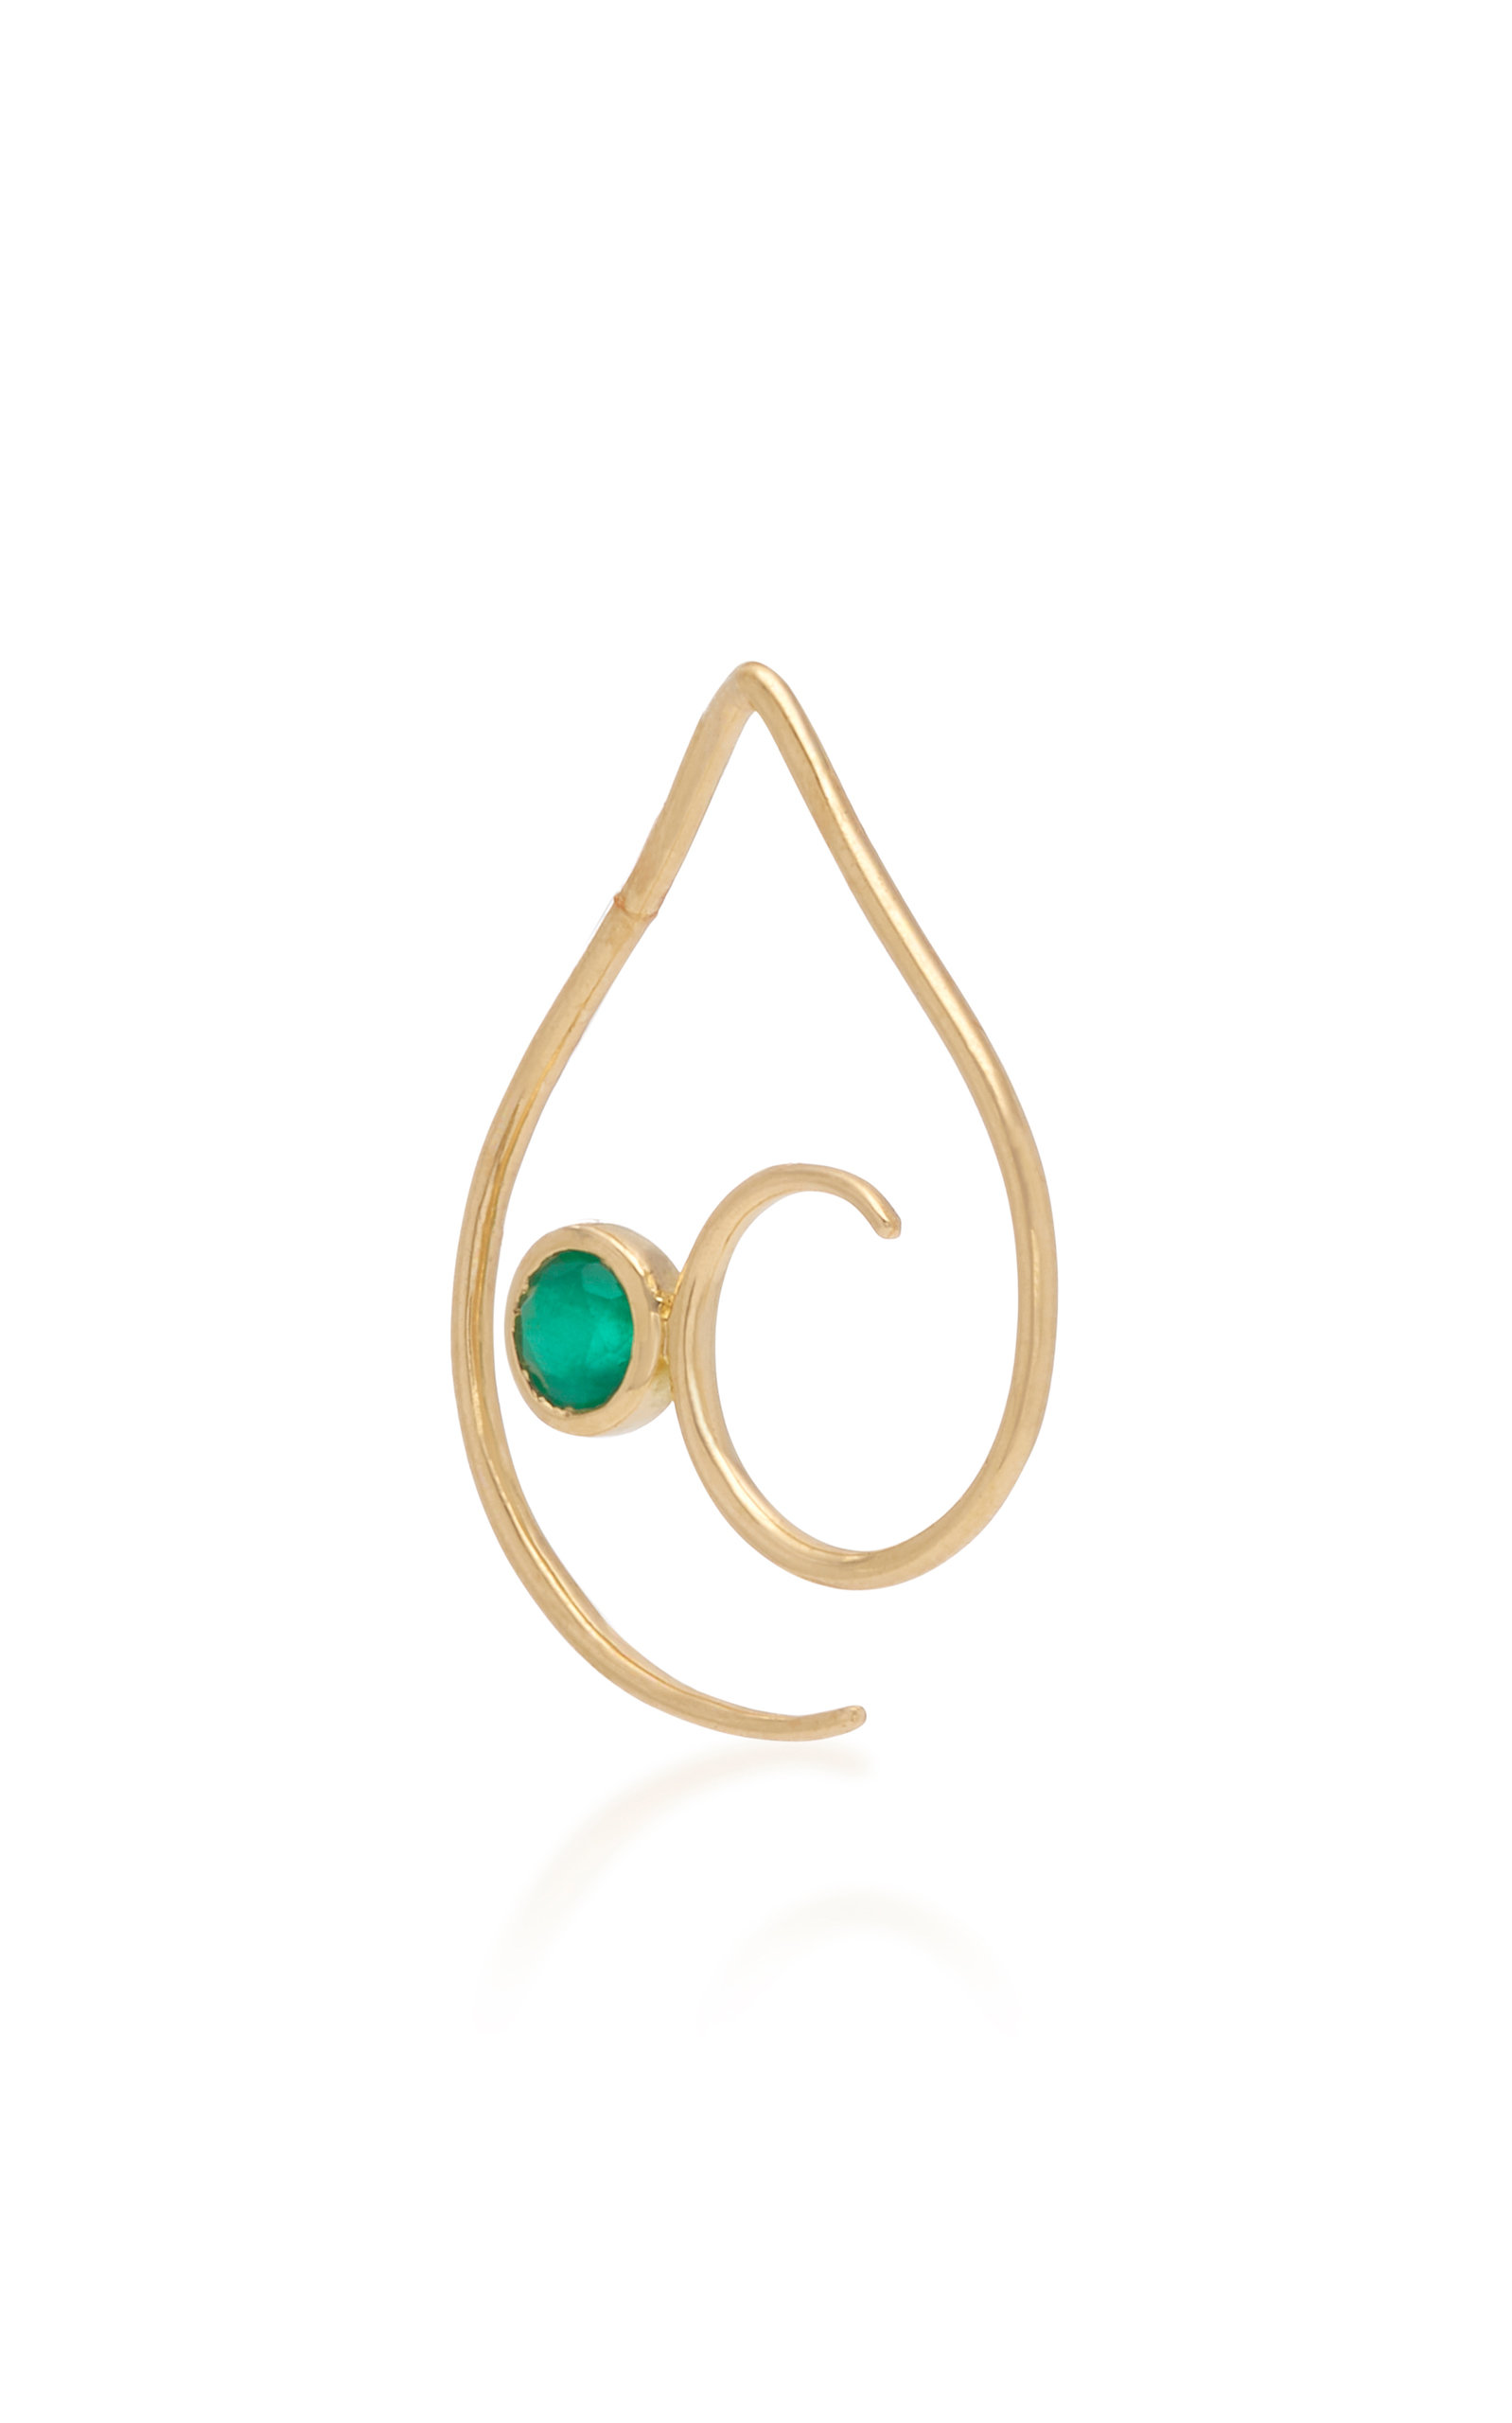 DONNA HOURANI Empathy 18K Gold And Emerald Earring